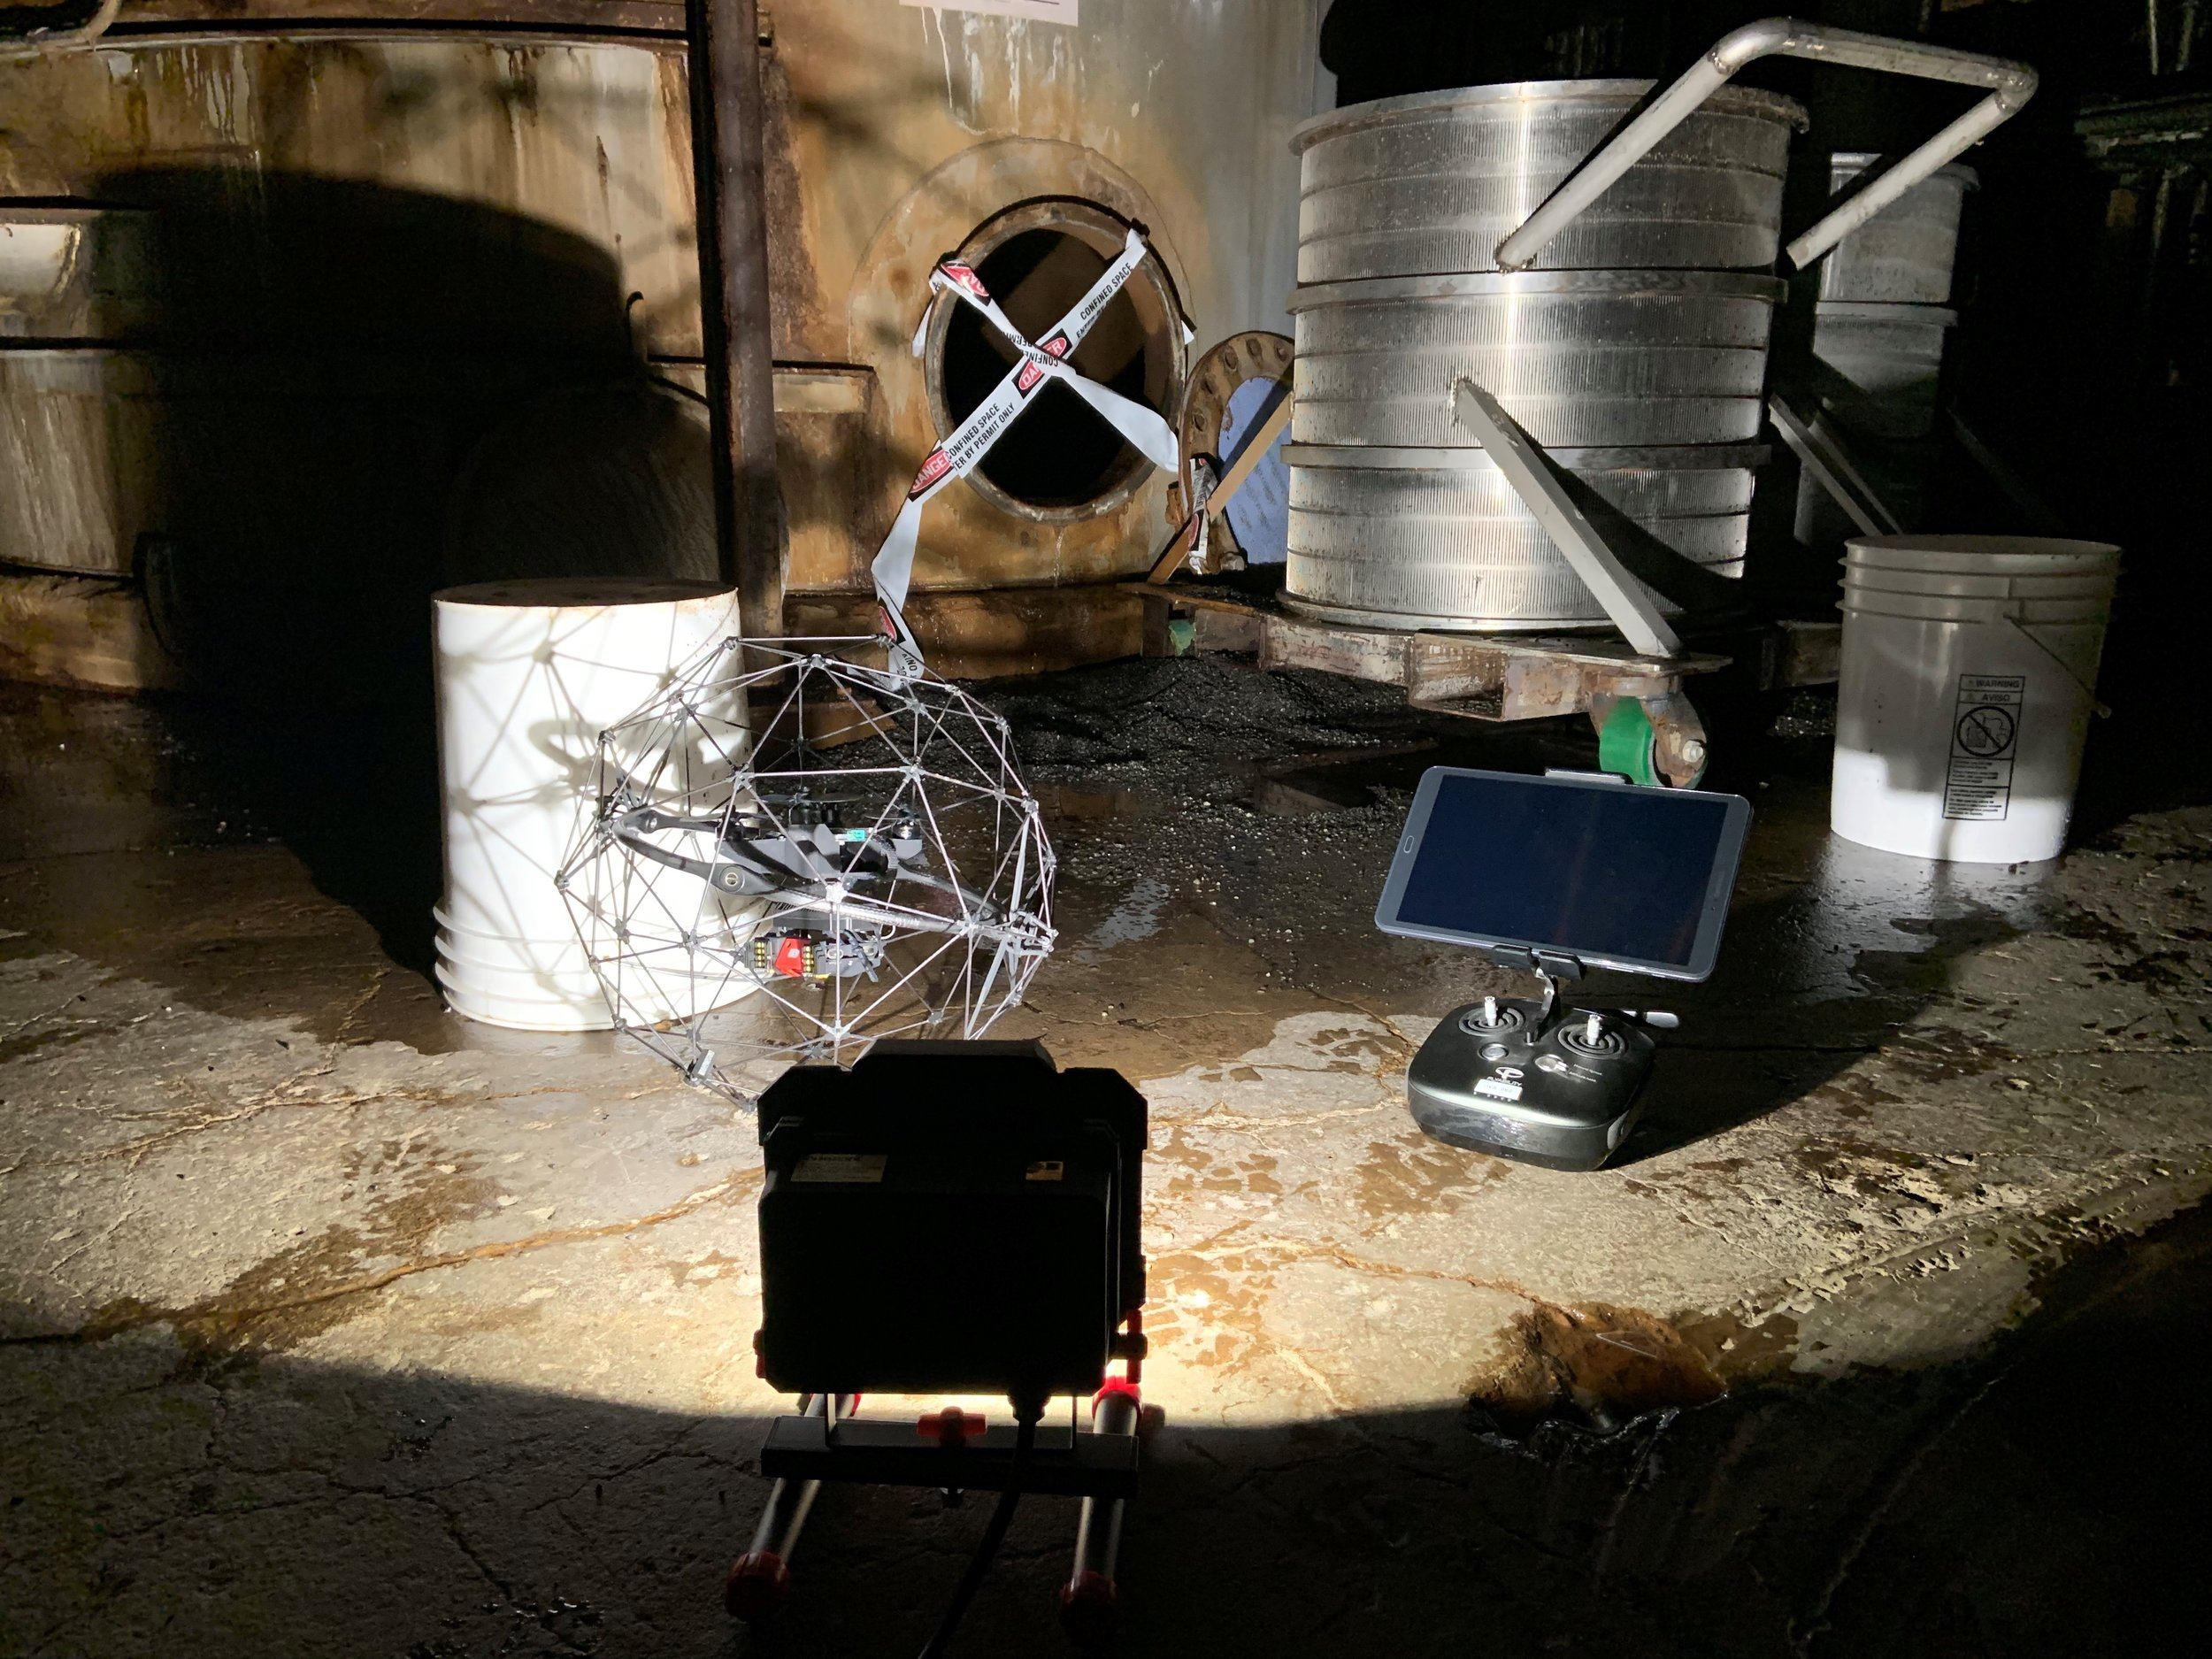 Confined Space Drone Services Baton Rouge Foley Aerial Services